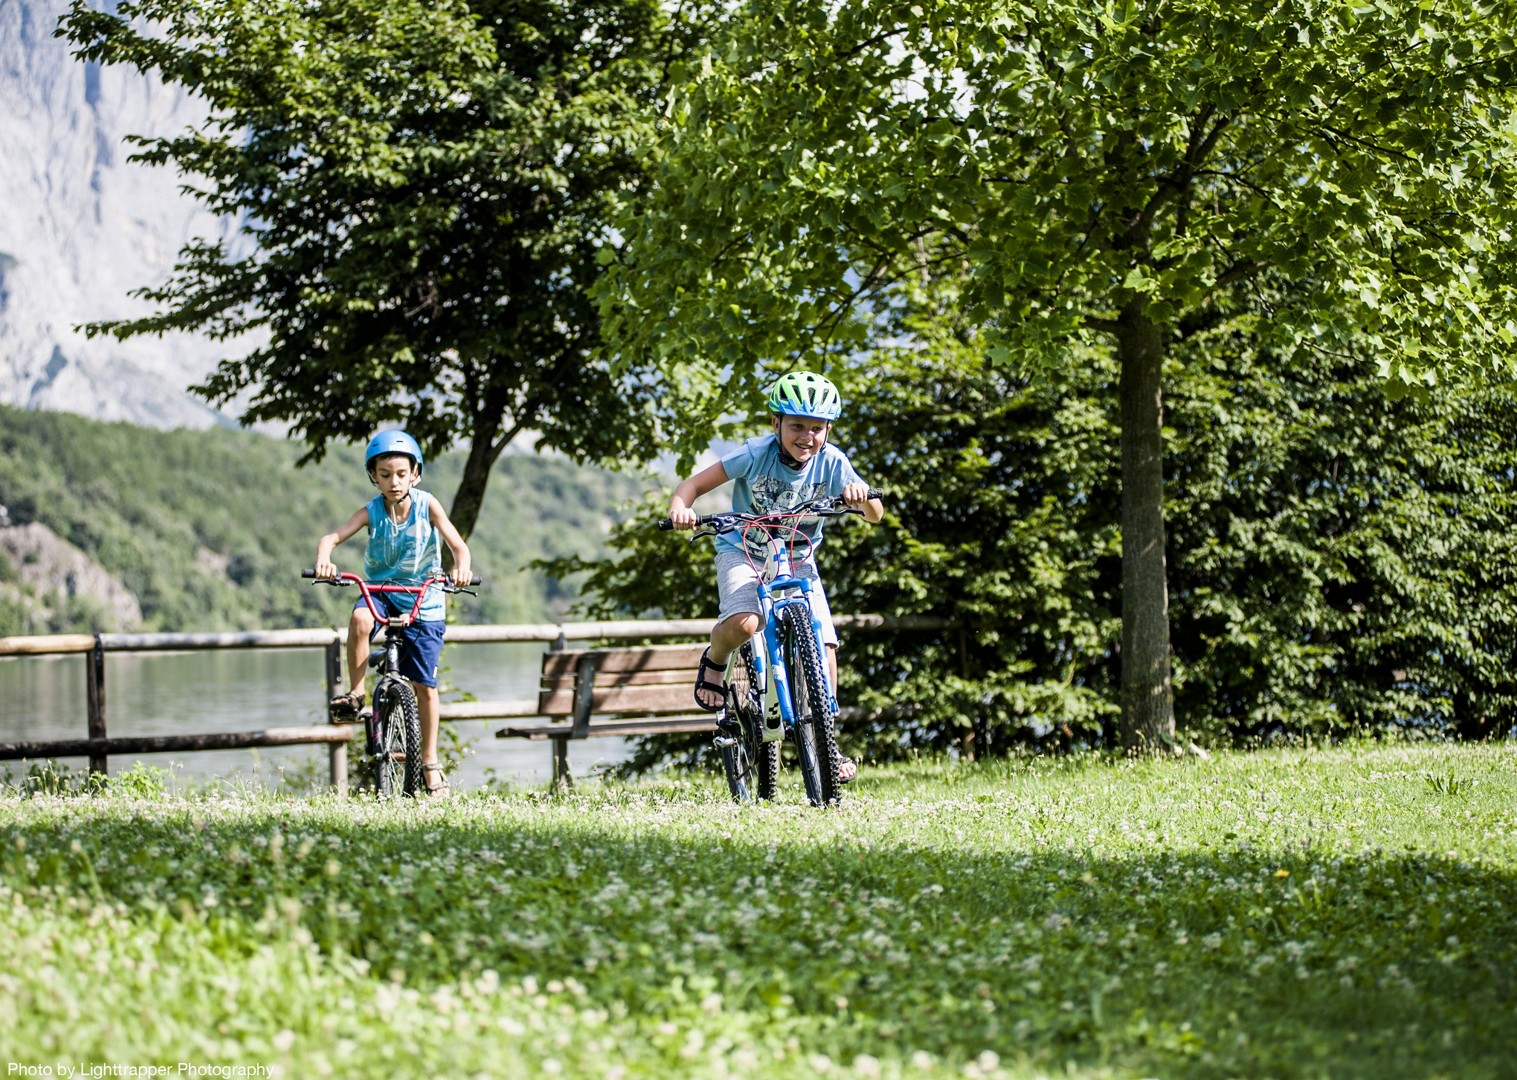 slovenia-magical-lake-bled-self-guided-family-cycling-holiday.jpg - Slovenia - Magical Lake Bled - Self-Guided Family Cycling Holiday - Family Cycling